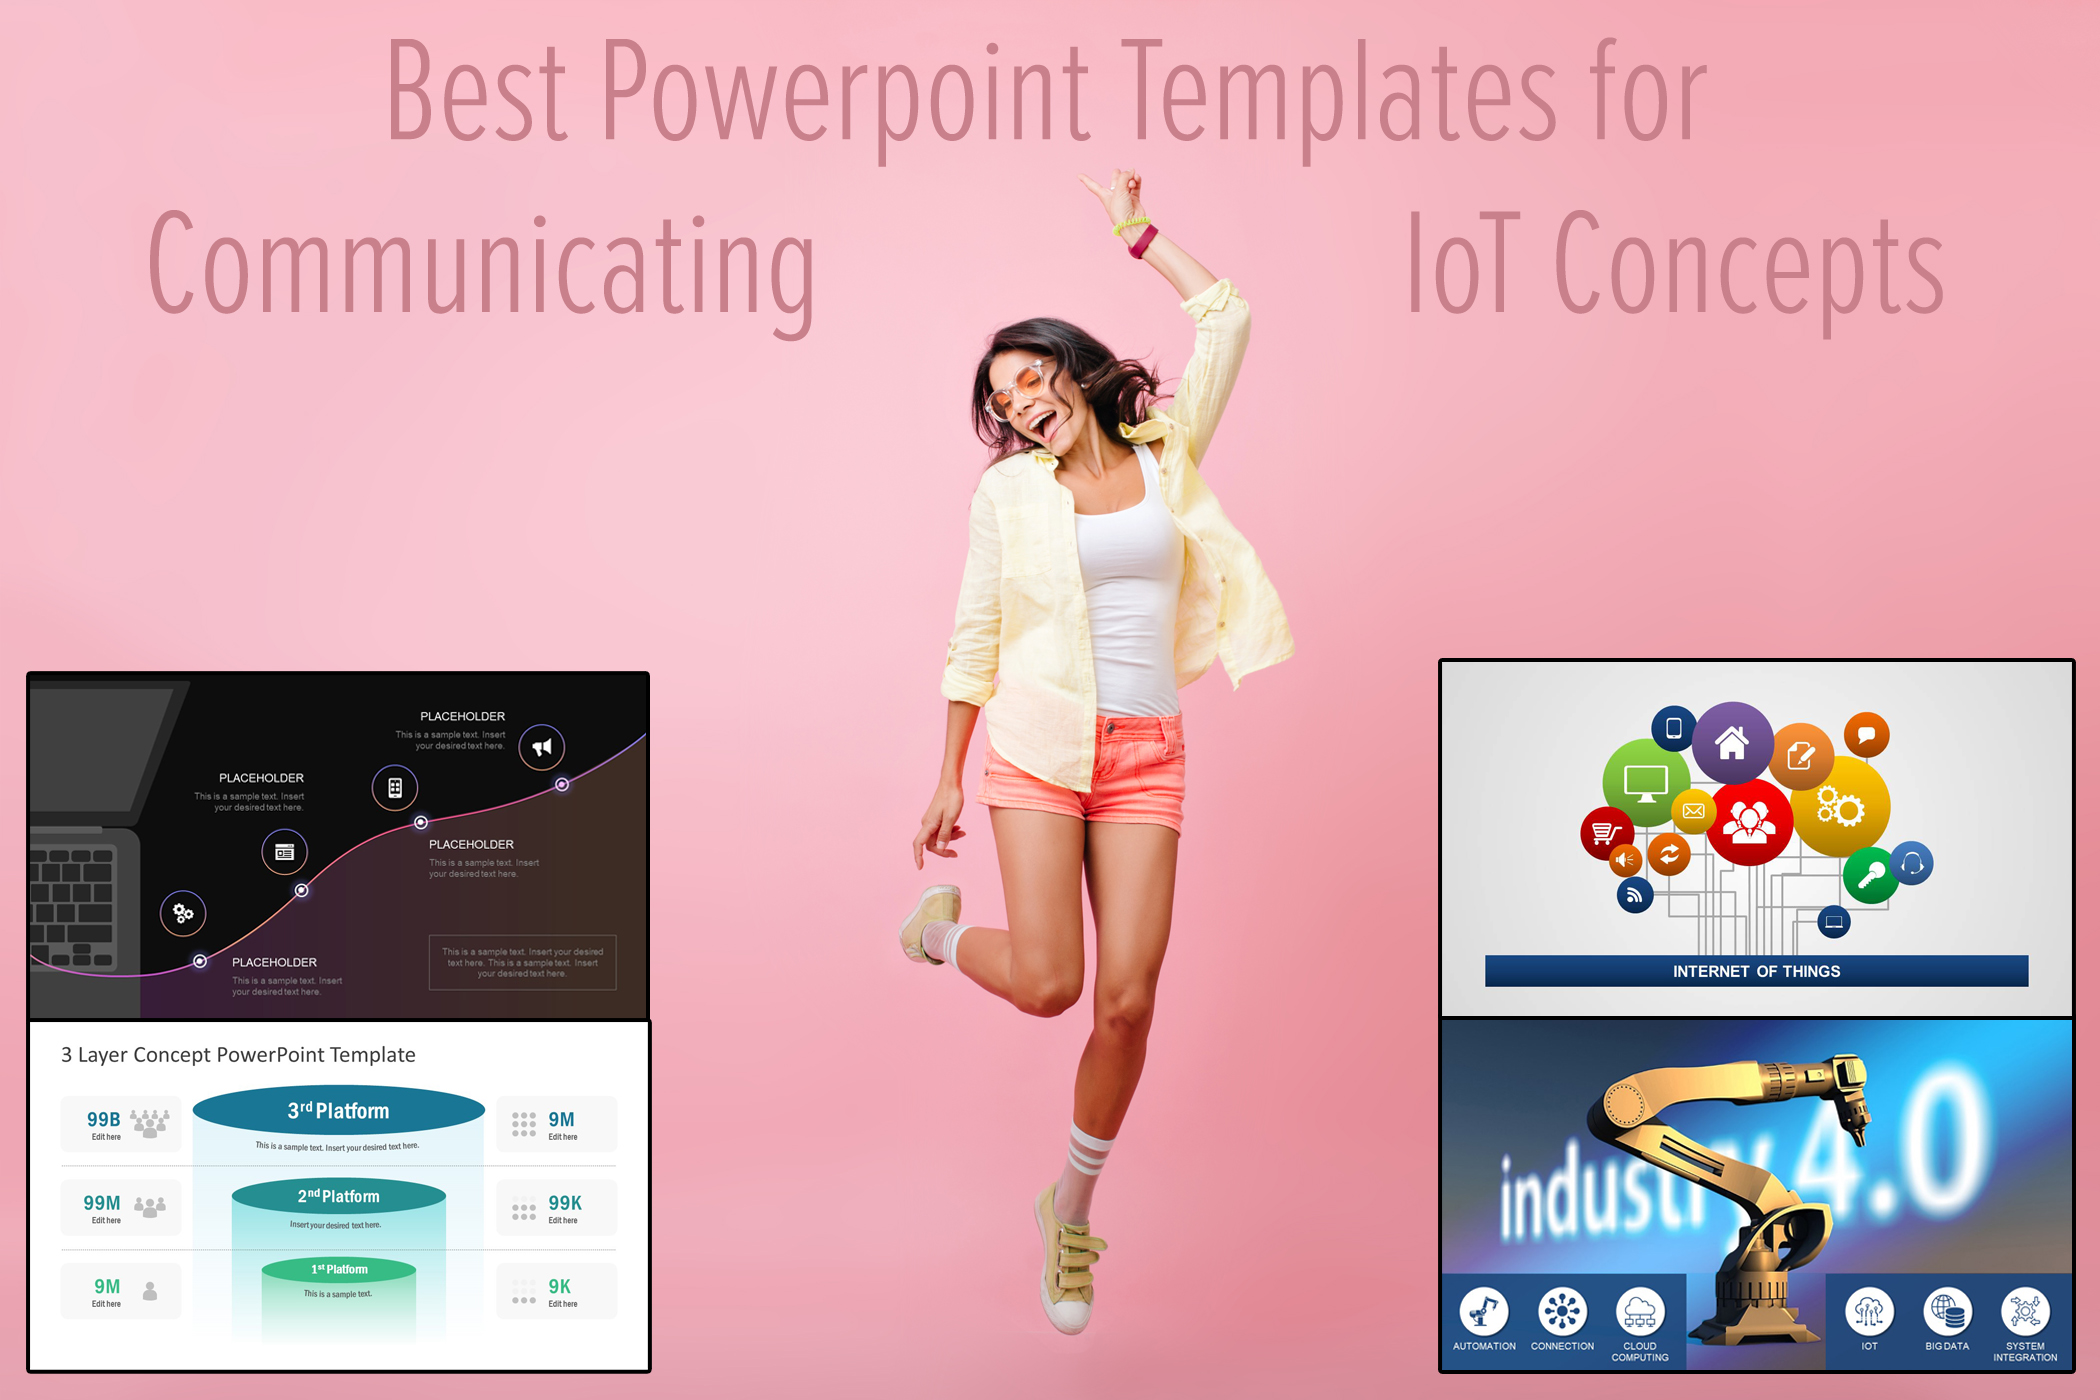 Best Powerpoint Templates for Communicating IoT Concepts